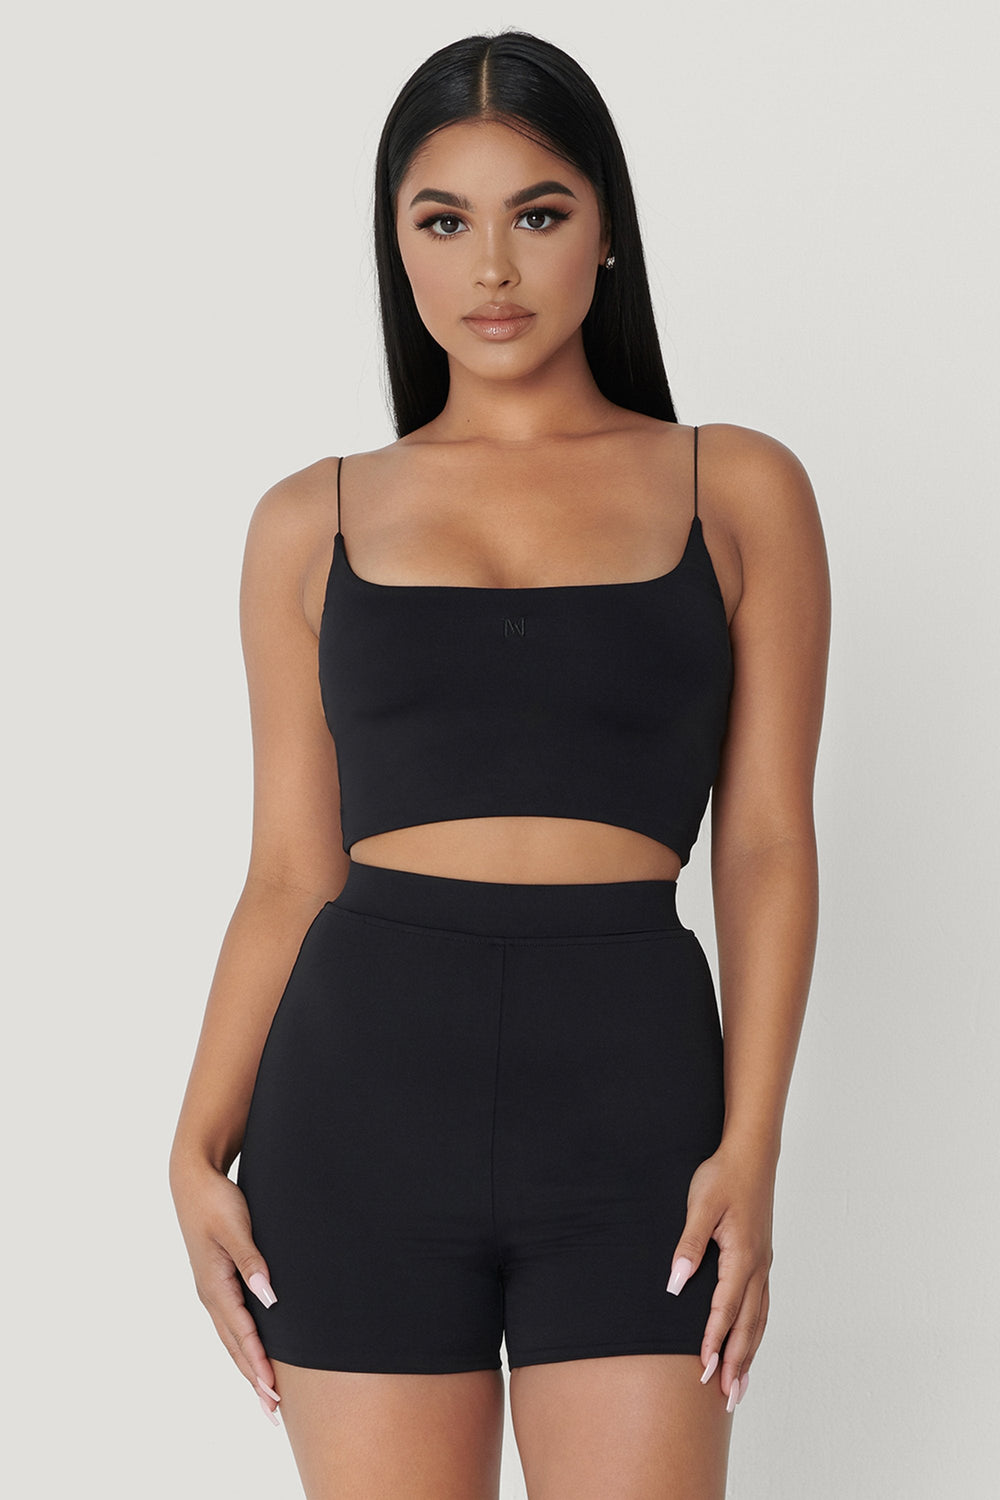 Kaiya Thin Strap Scoop Neck Crop Top - Black - MESHKI ?id=12376386961483